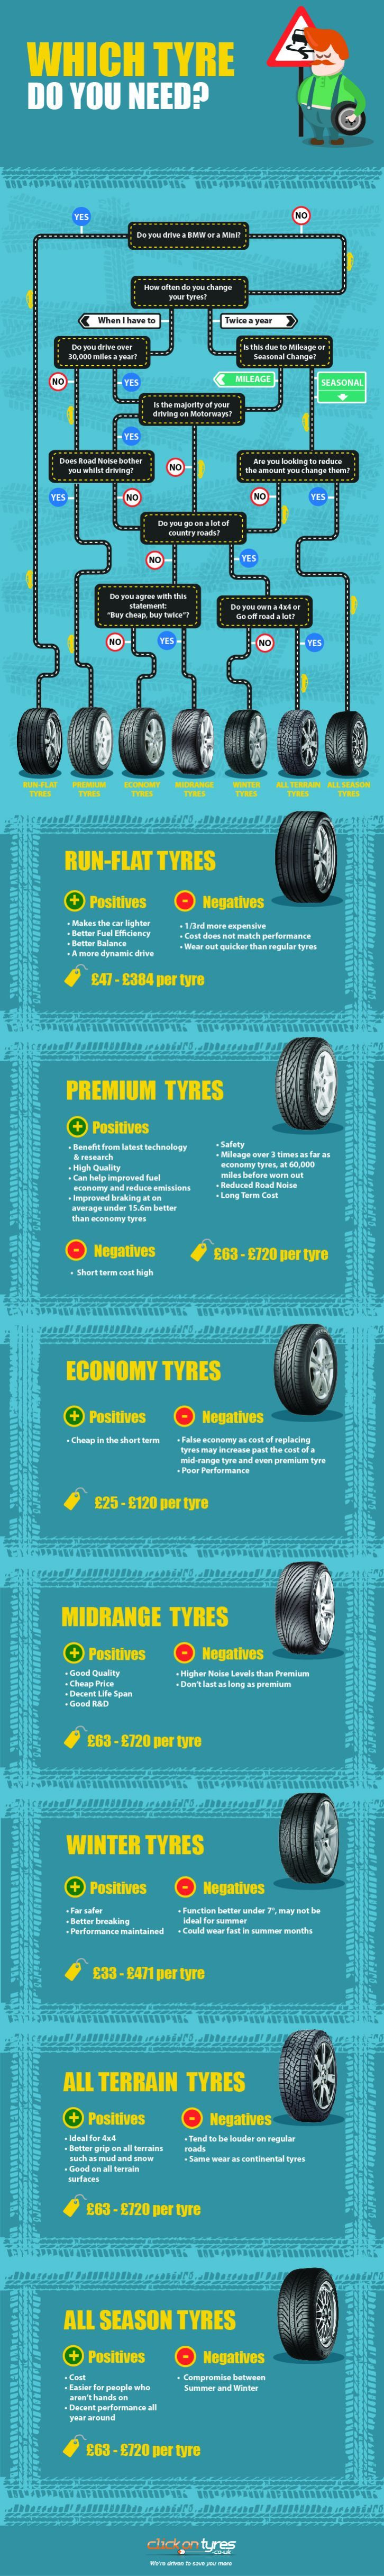 Don's Auto Repair's Pinterest #ztyre Image created at - What Type of Tyre do you Really Need? #infographic